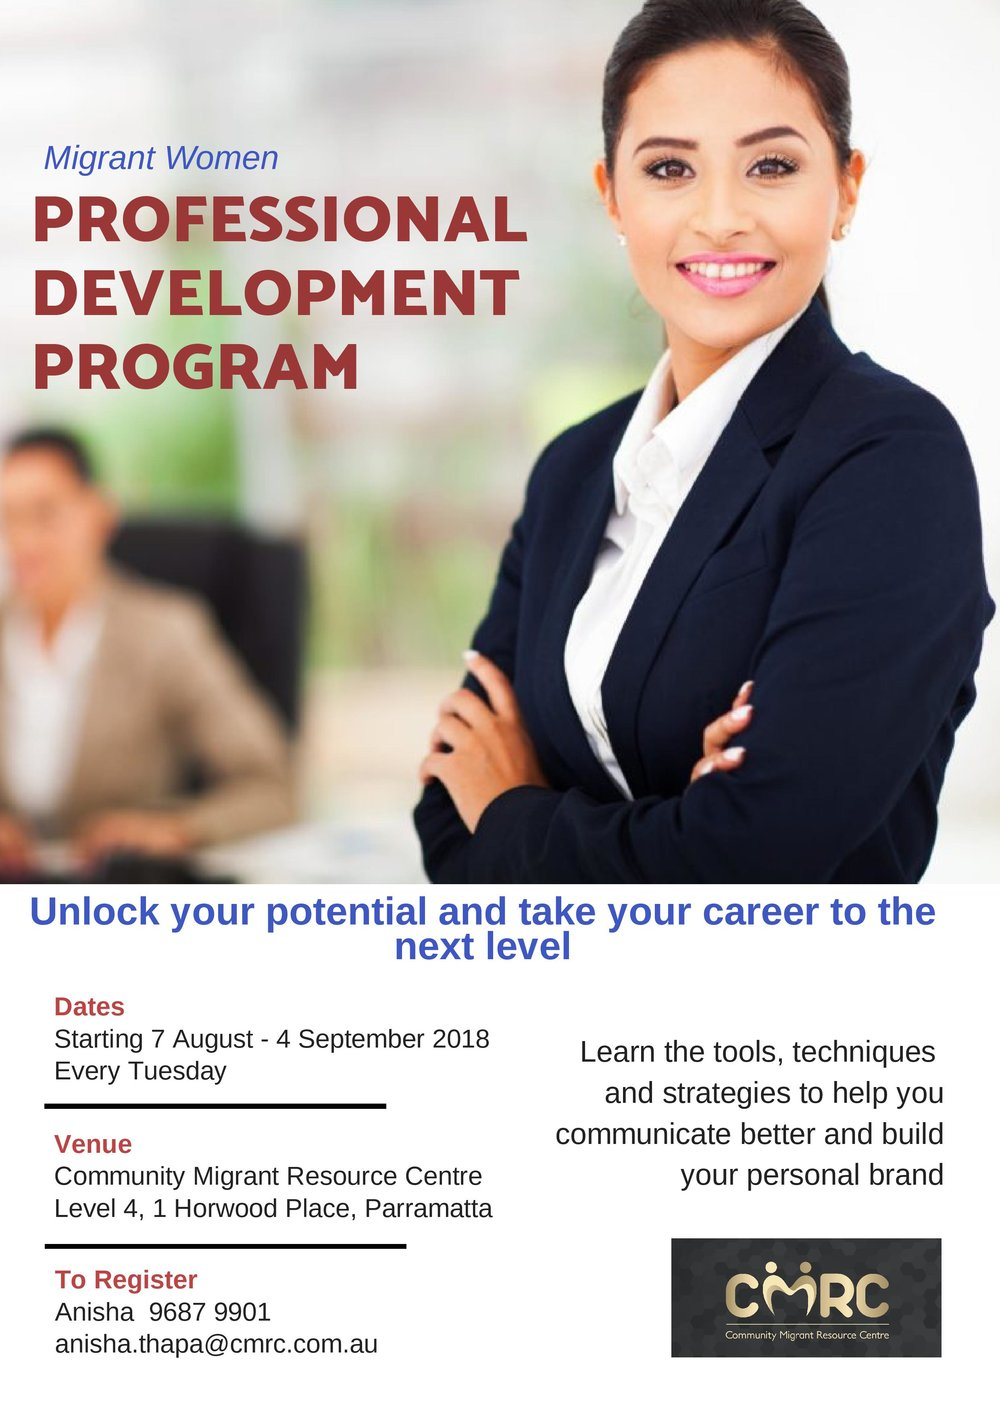 Migrant Women - Professional Development Program-page-001.jpg